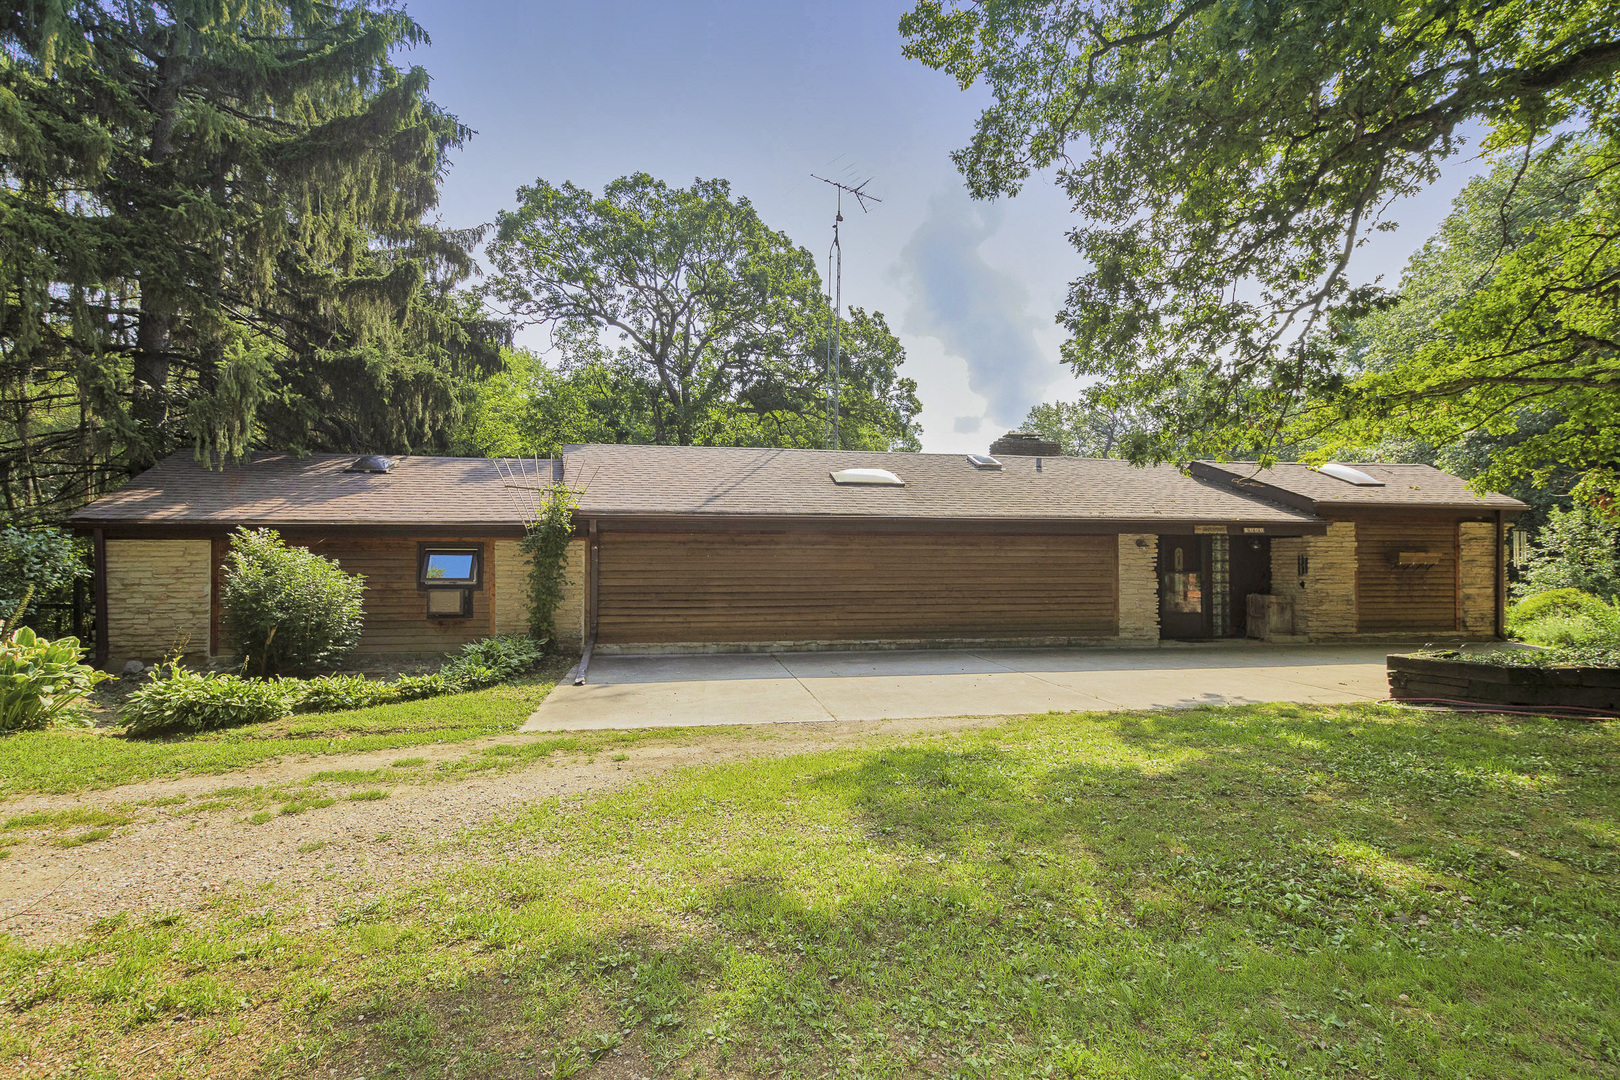 8000 N State Park Road, Spring Grove, Il 60081